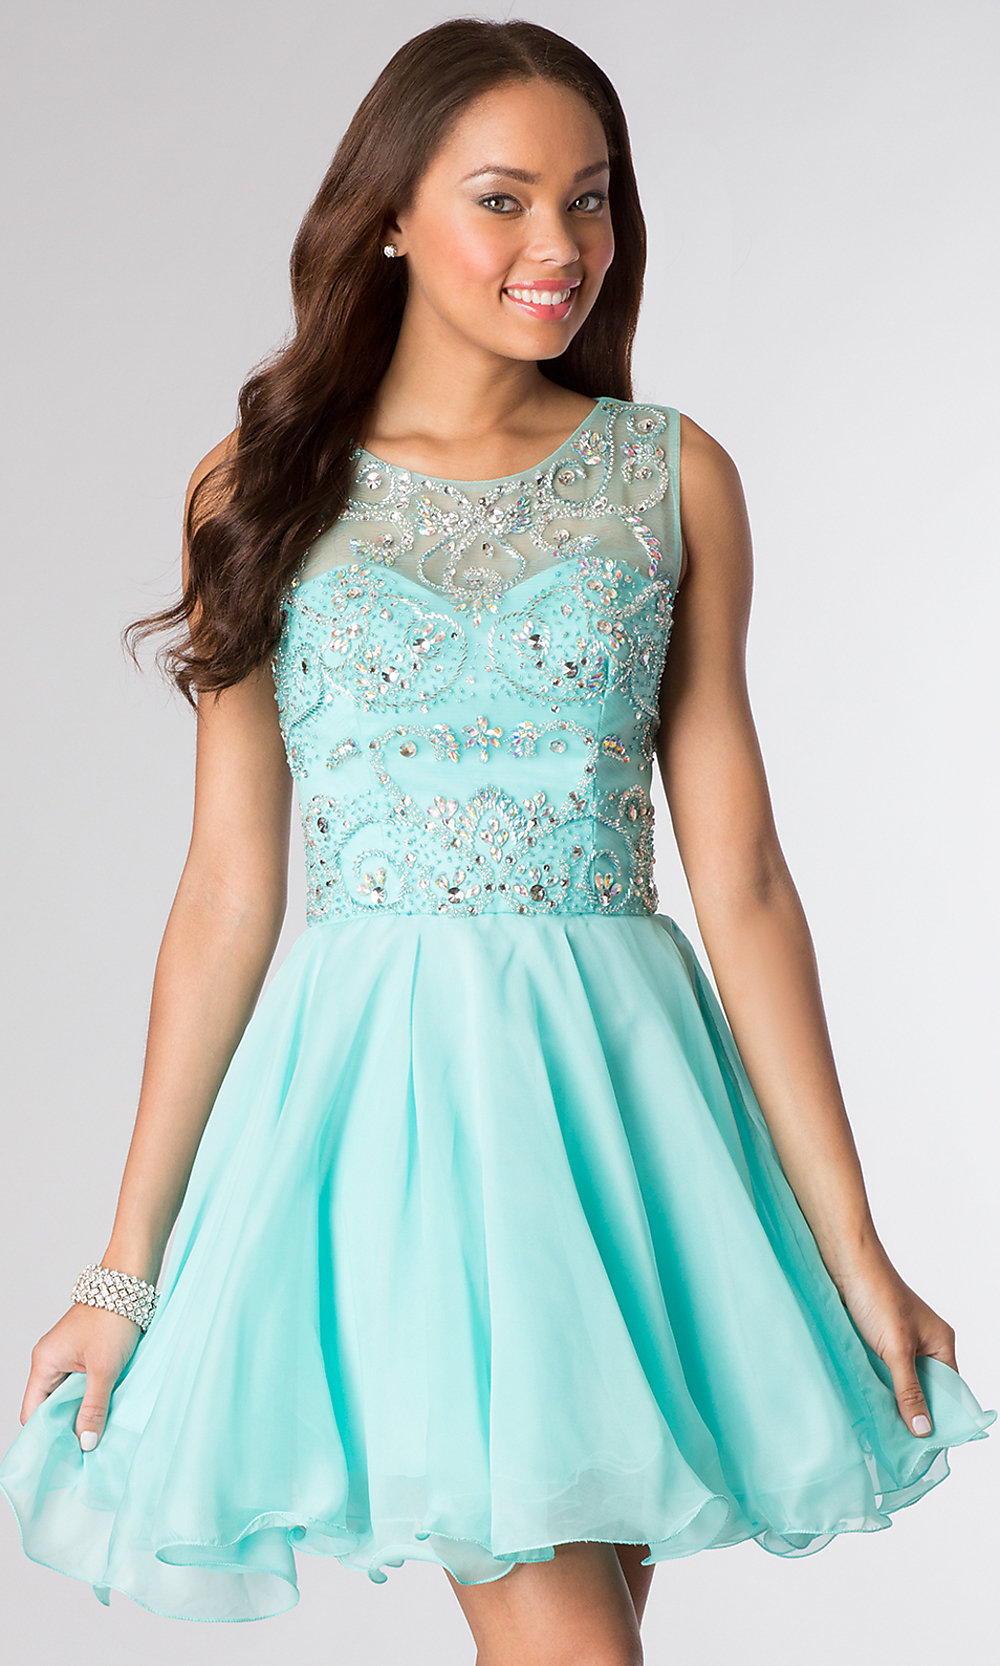 Shop closeout dresses on sale at PromGirl for up to 50% off. From silky cocktail short dresses to long ball gowns for prom or formals these discount dresses are top styles from top designers.